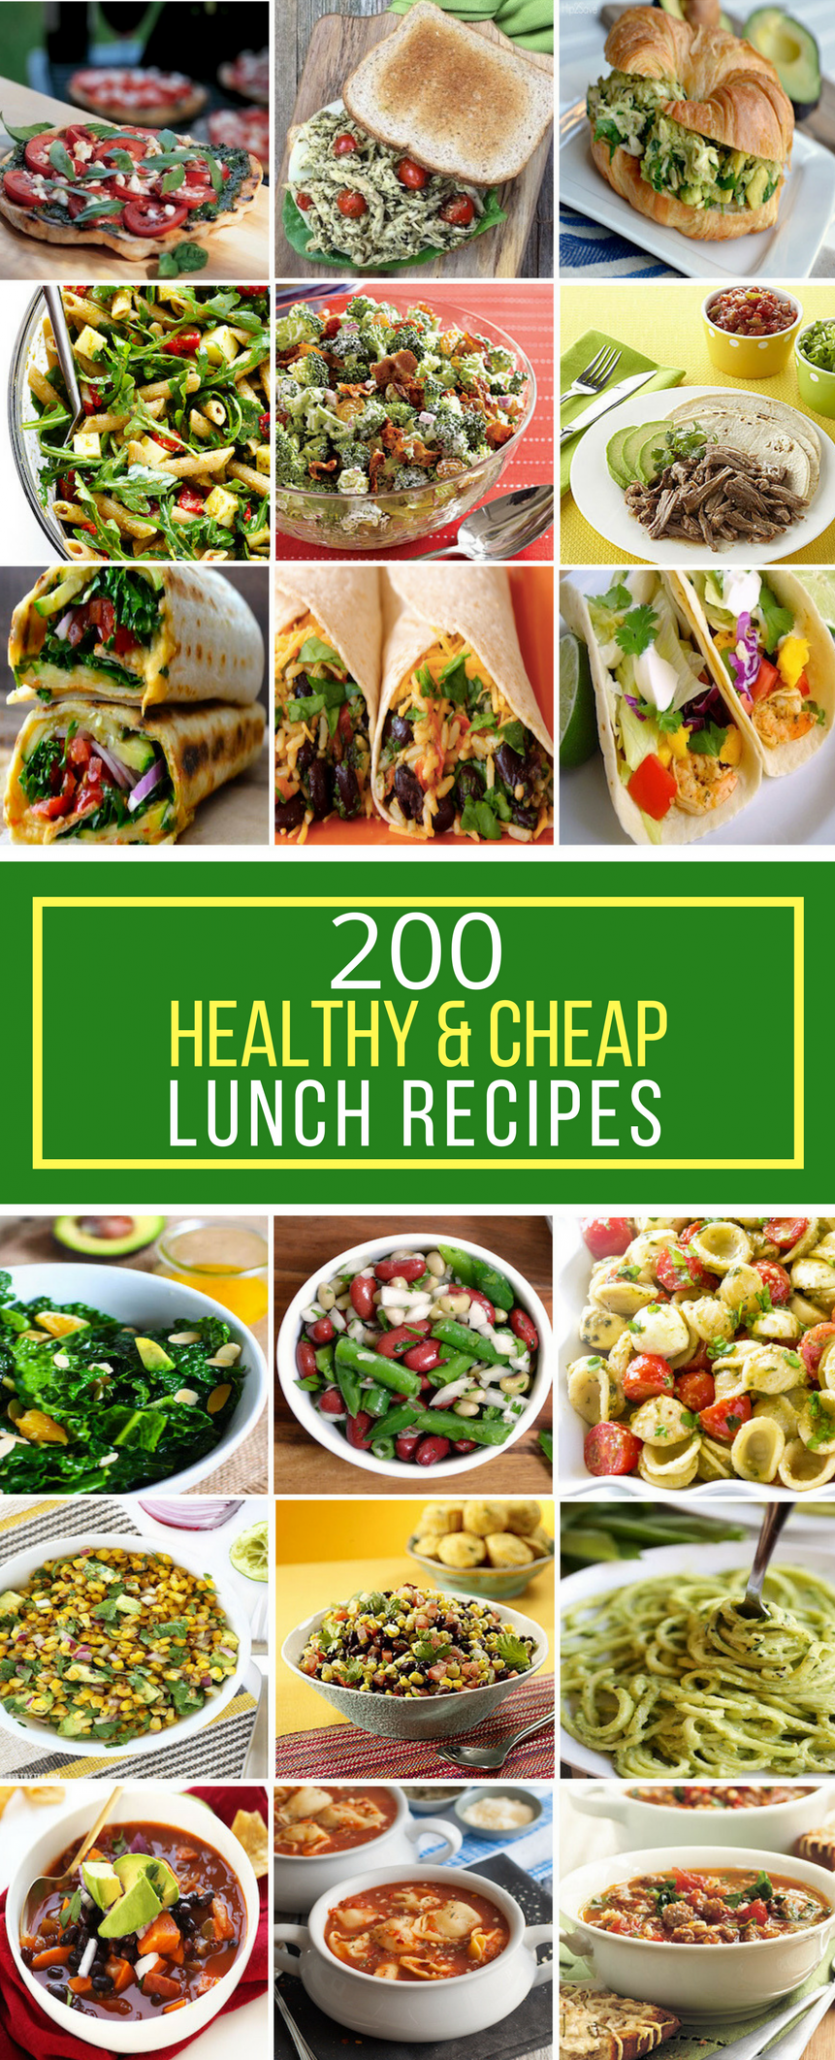 15 Healthy & Cheap Lunch Recipes - Prudent Penny Pincher - recipes cheap dinner